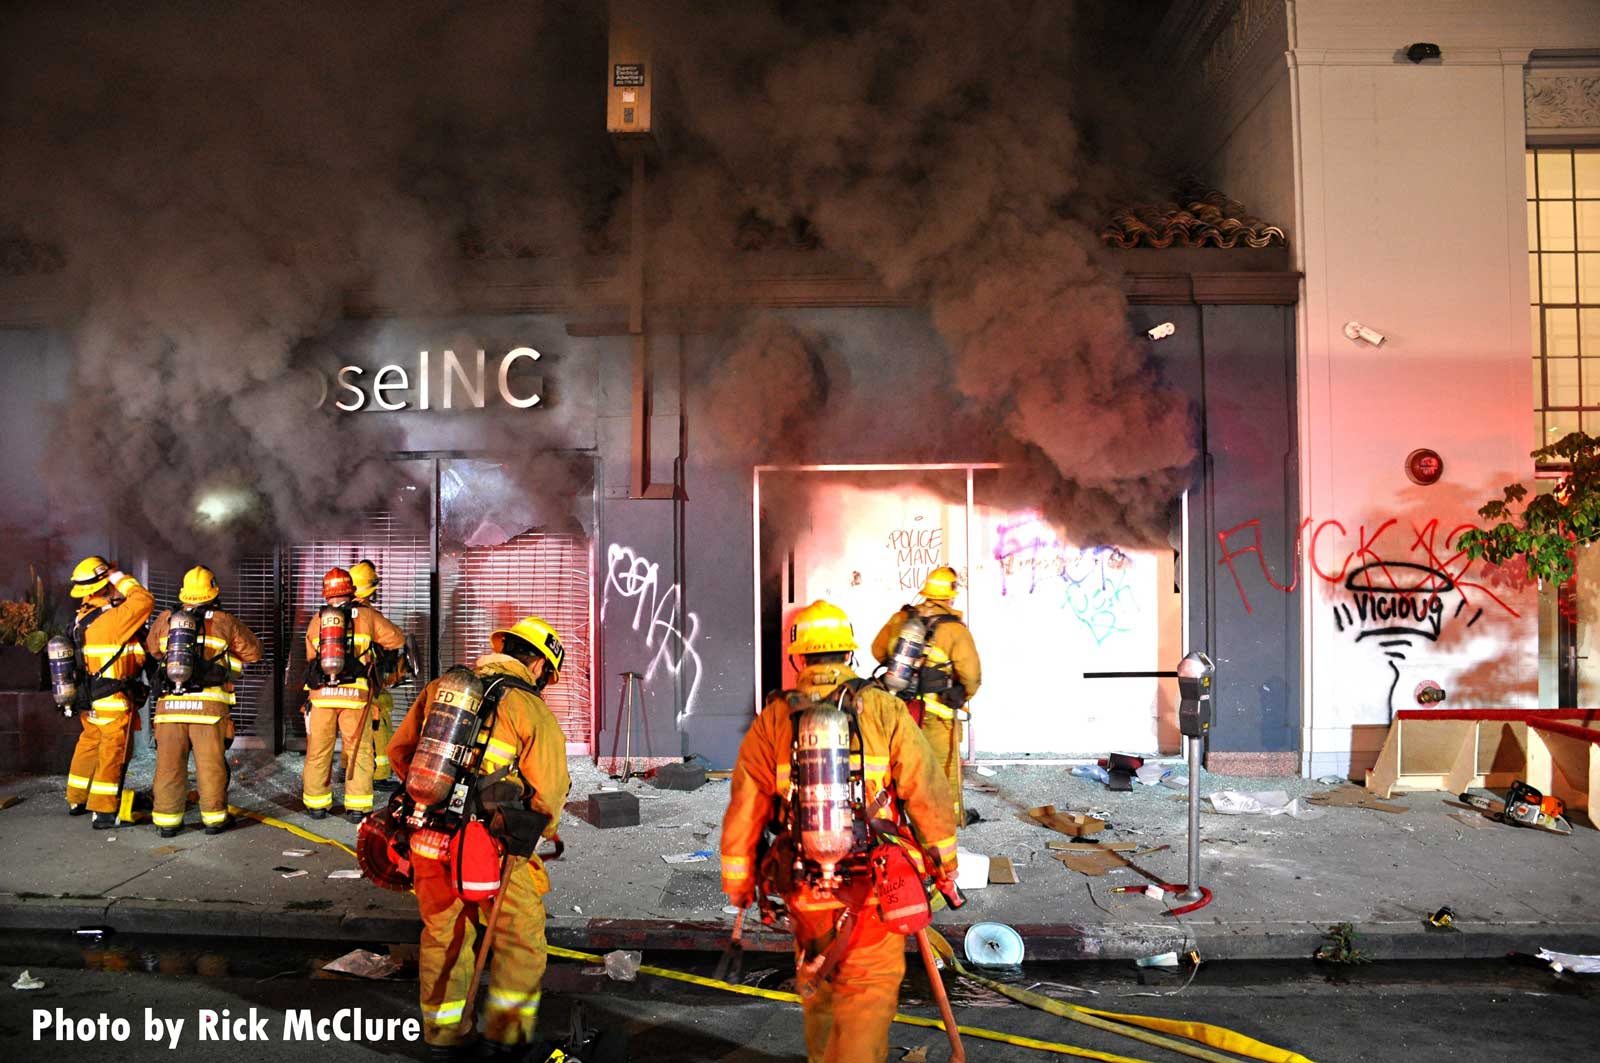 Smoke vents from building as LAFD crews work